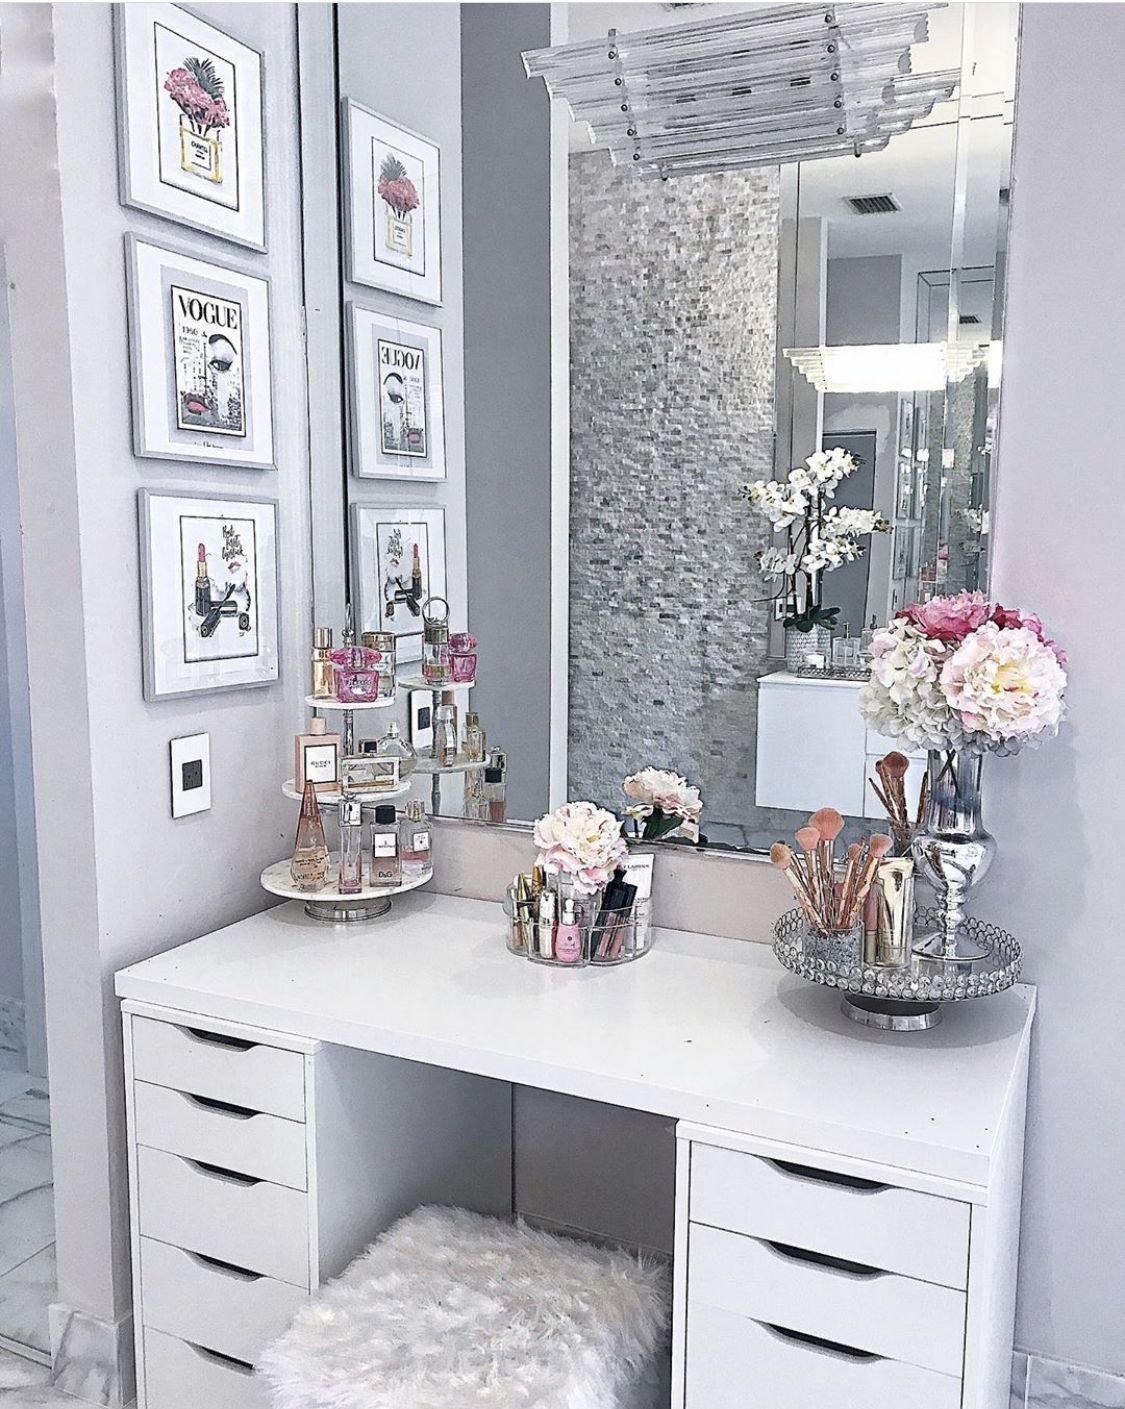 Pin by ★.•°˚Ƥ⍲σℓ⍲˚°•.★ on VANITIES in 2020 Glam room